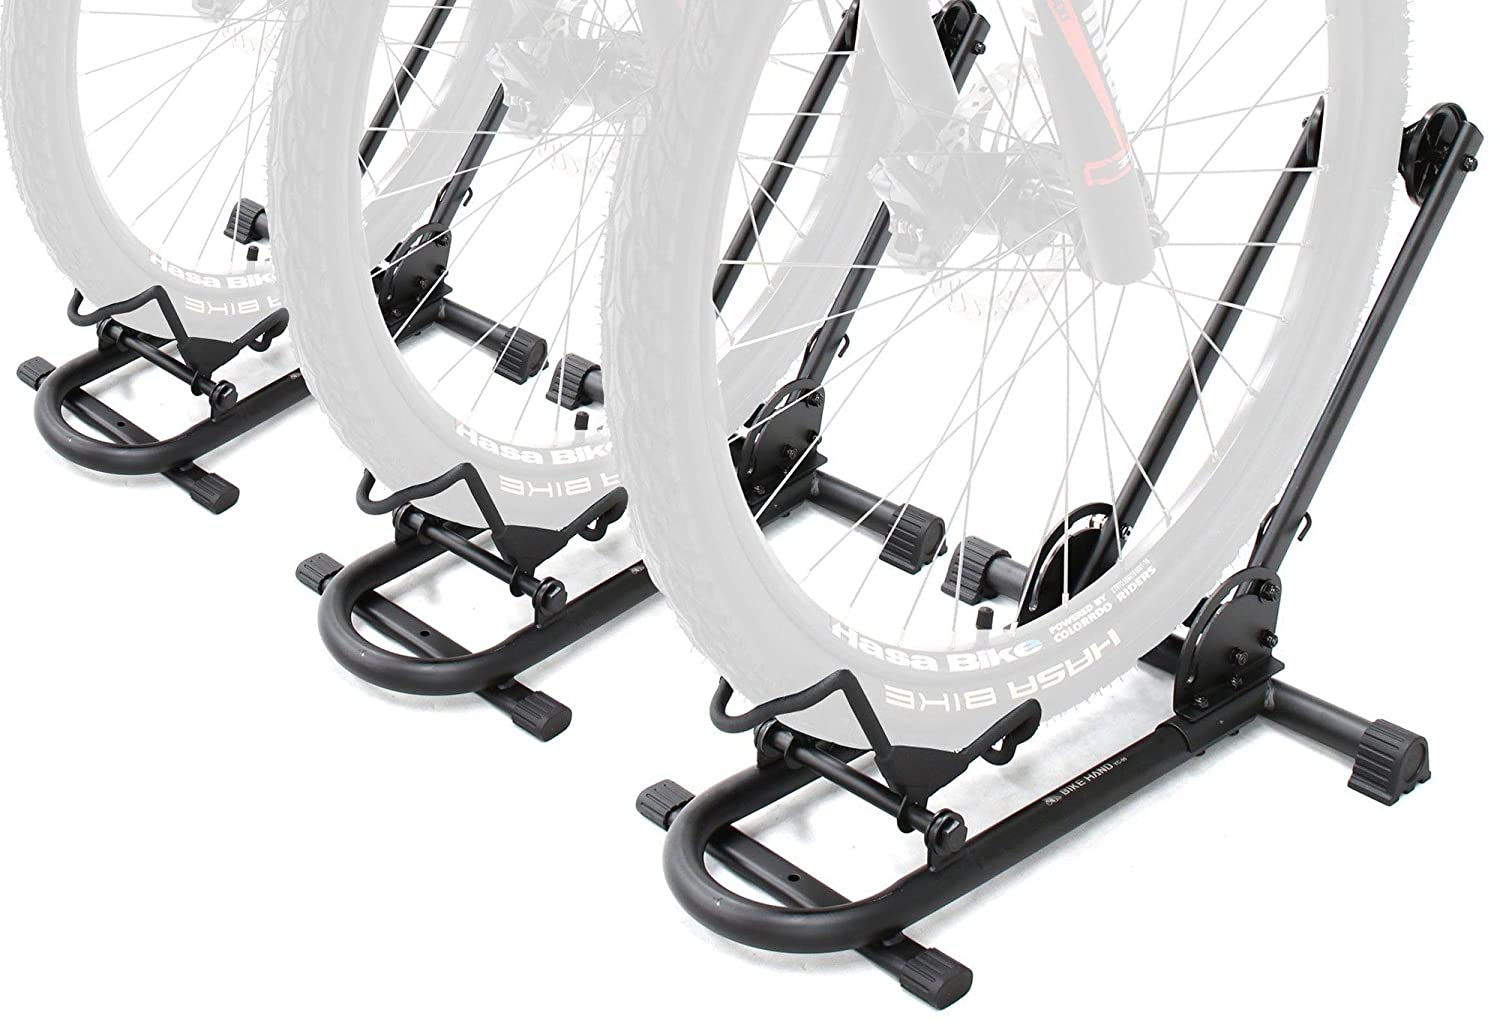 BIKEHAND Bike Floor Parking Rack Storage Stand Bicycle - Secure Easy Push In Sytem - Light Weight Foldable & Portable - Great for Road, Mountain, BMX & Kids Bikes